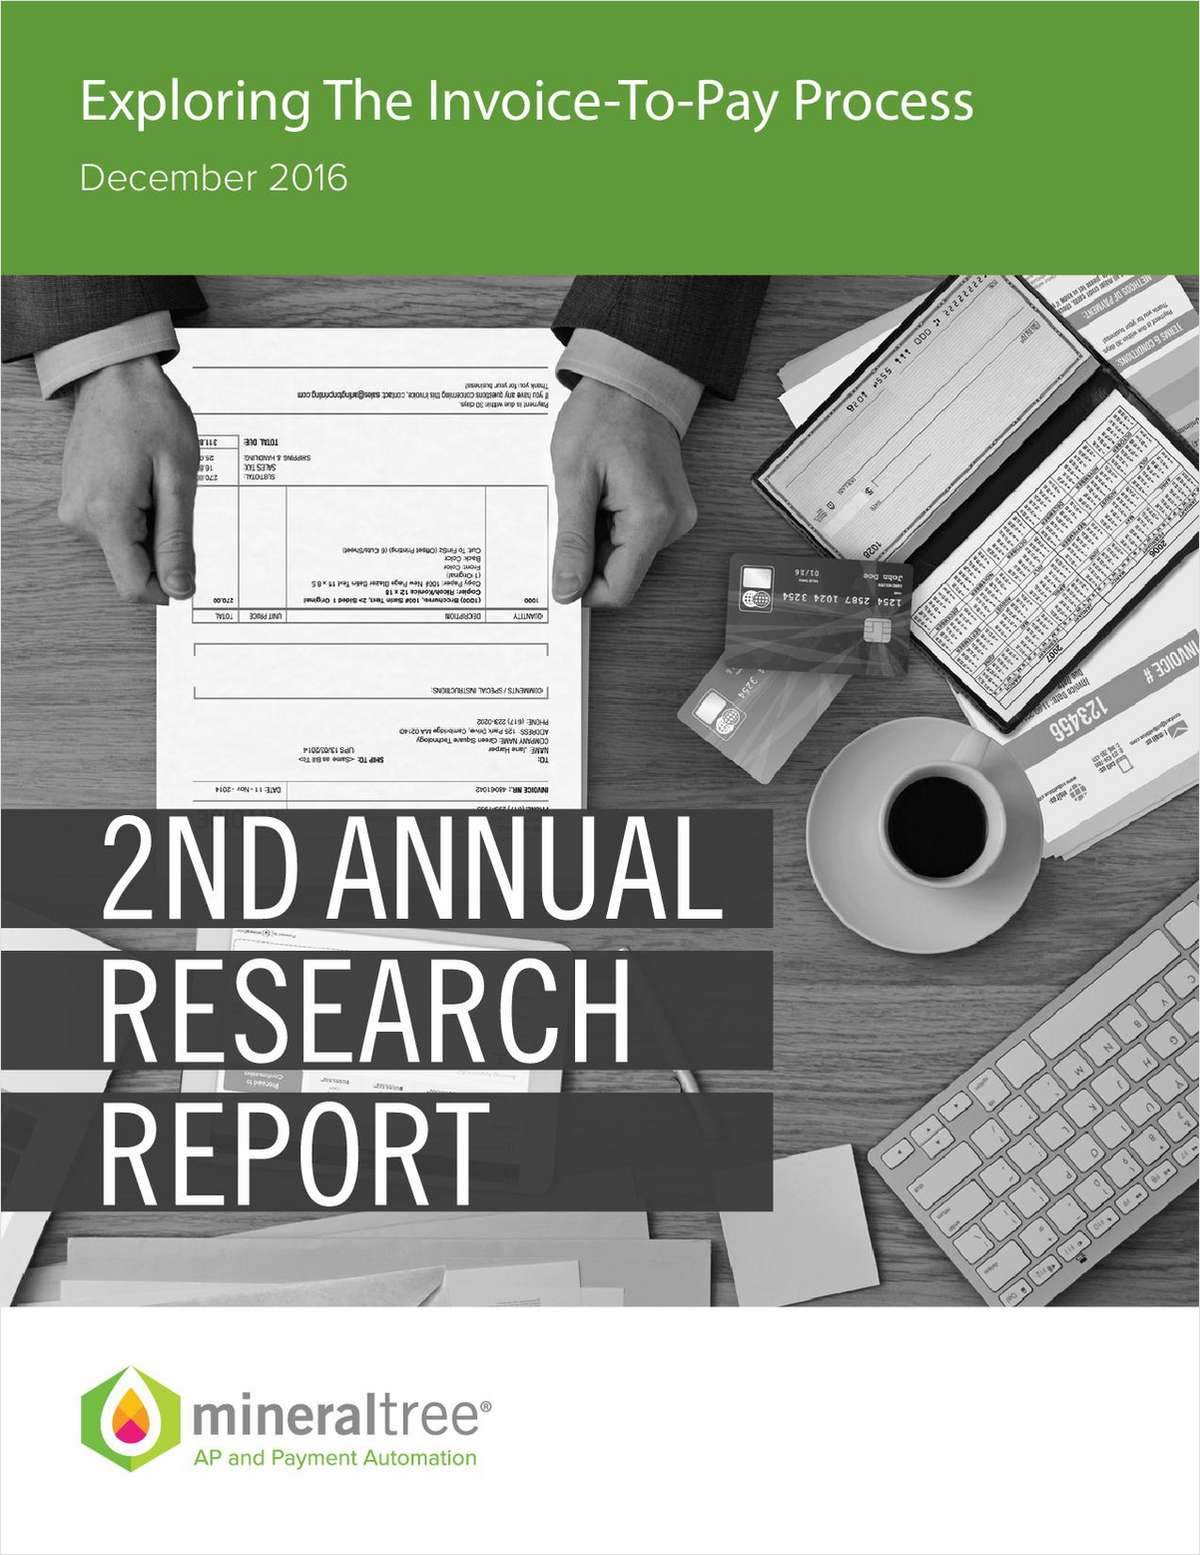 MineralTree Annual Research Brief - Exploring the Invoice-to-Pay Process